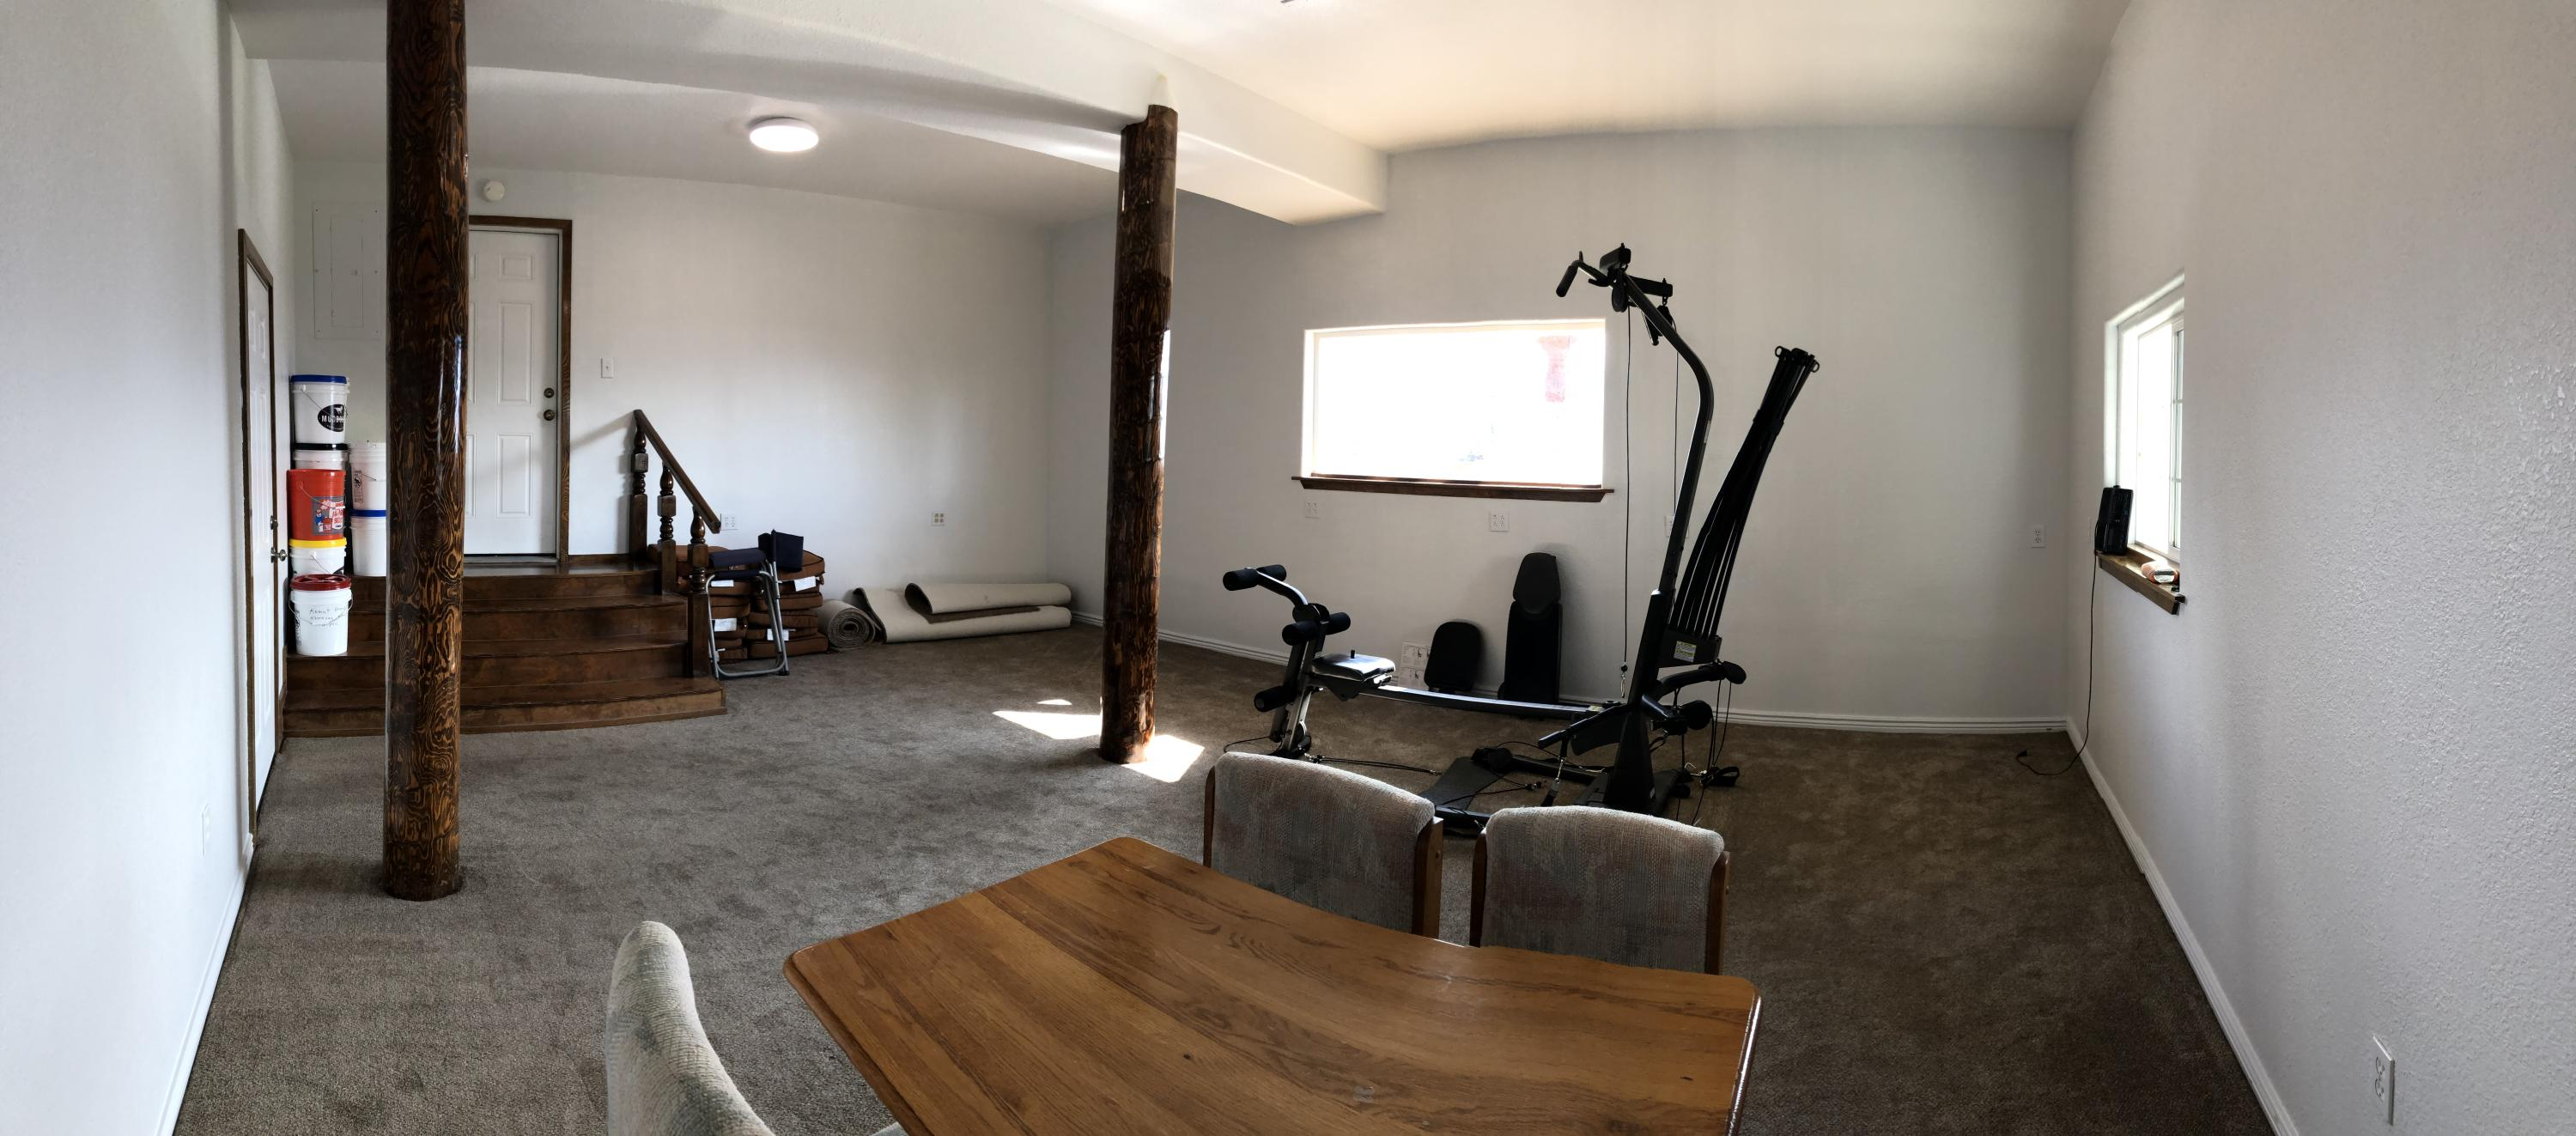 038 Workout room 2